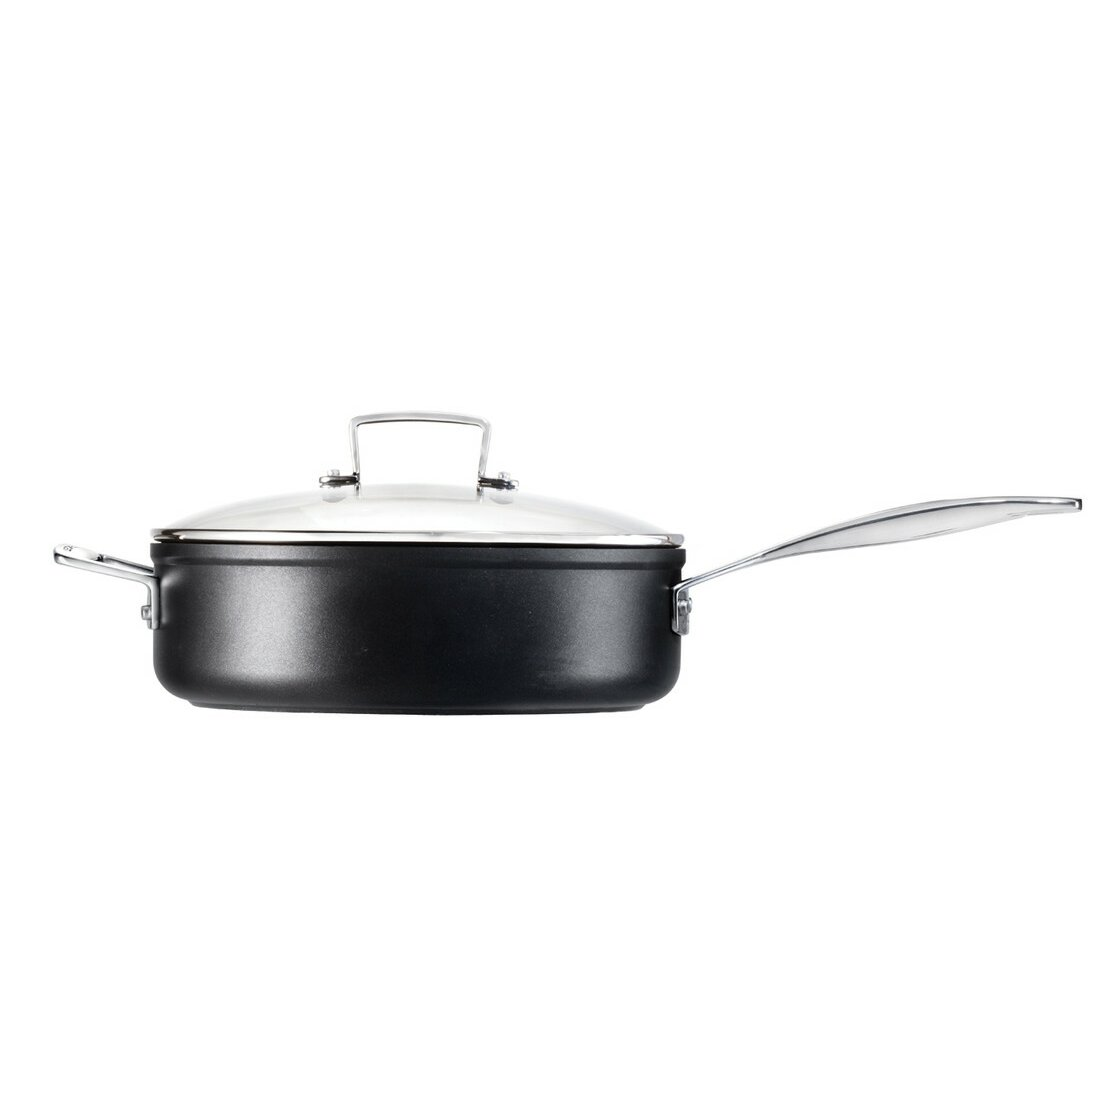 le creuset toughened non stick 4 5 qt saute pan reviews wayfair. Black Bedroom Furniture Sets. Home Design Ideas